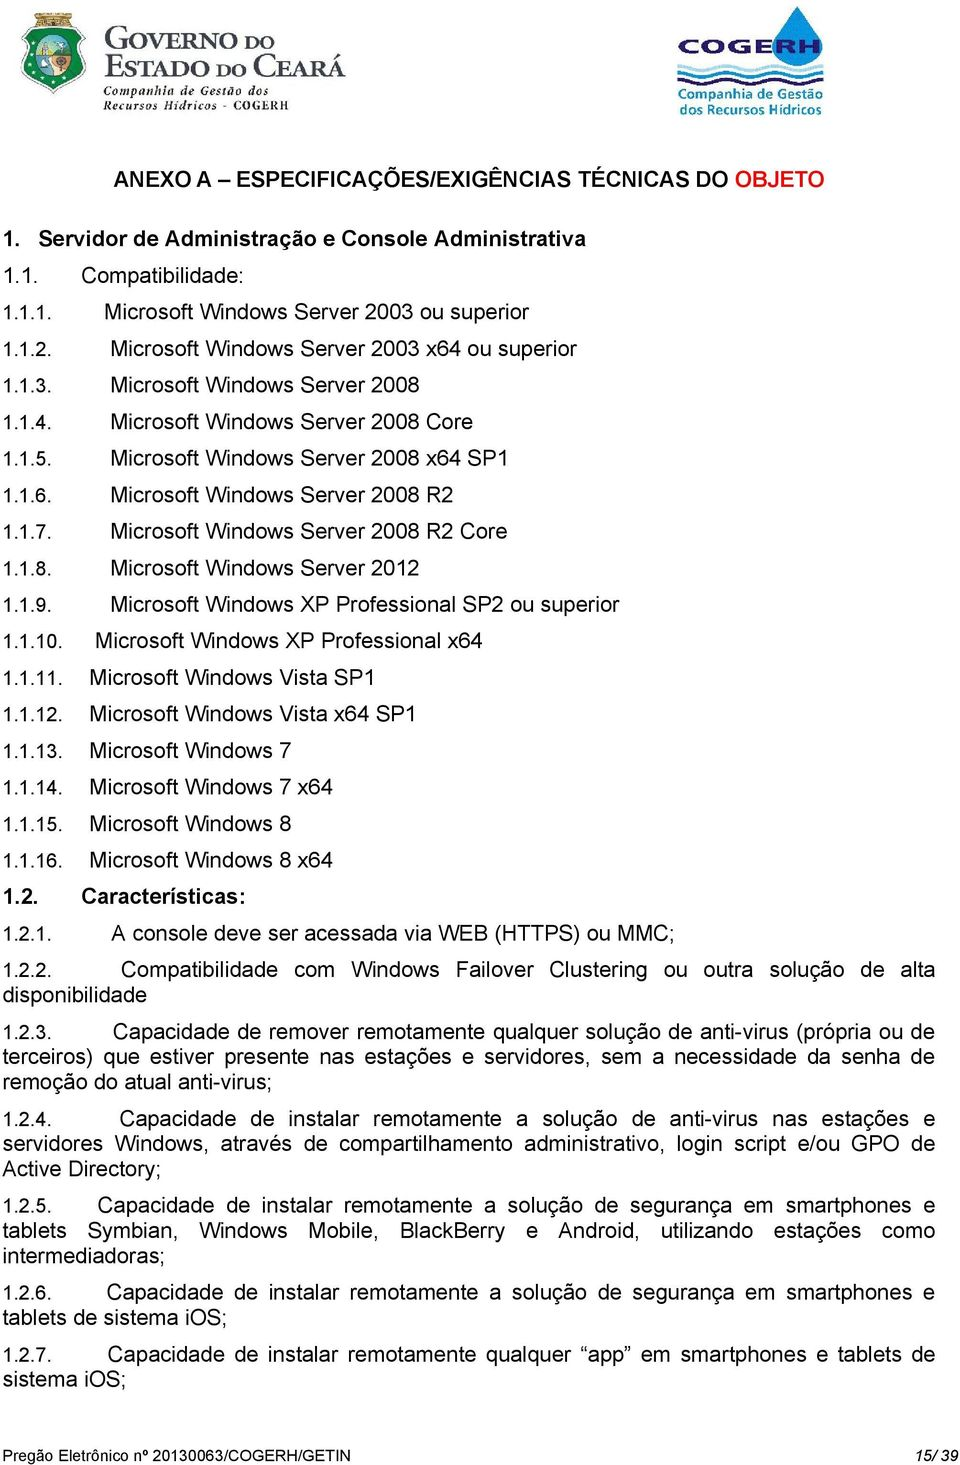 1.7. Microsoft Windows Server 2008 R2 Core 1.1.8. Microsoft Windows Server 2012 1.1.9. Microsoft Windows XP Professional SP2 ou superior 1.1.10. Microsoft Windows XP Professional x64 1.1.11.